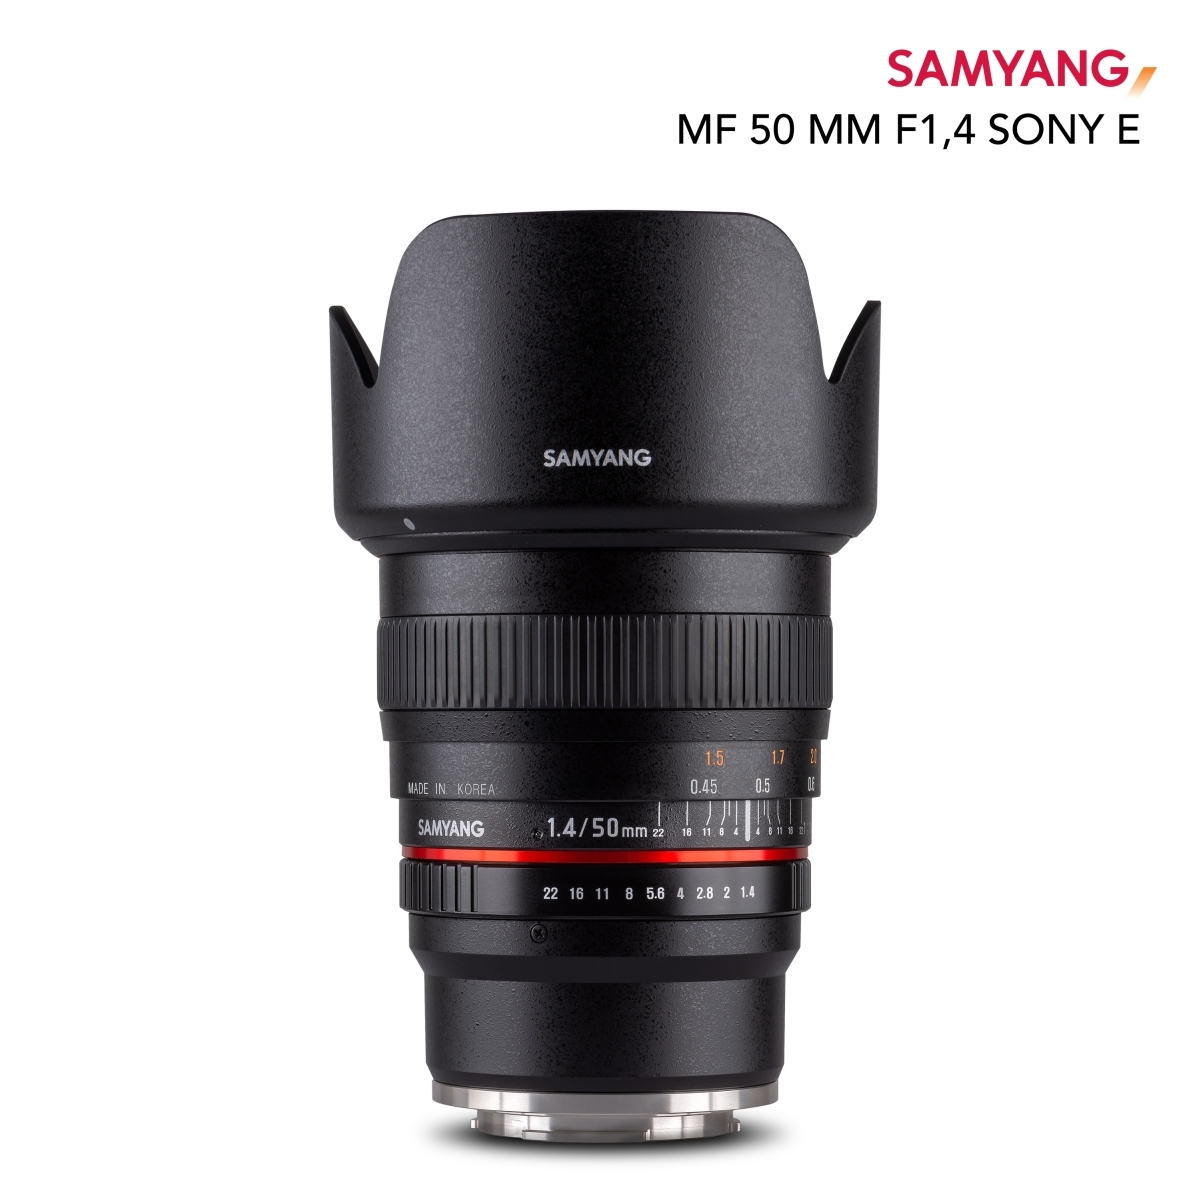 Samyang MF 50mm F1.4 Sony E